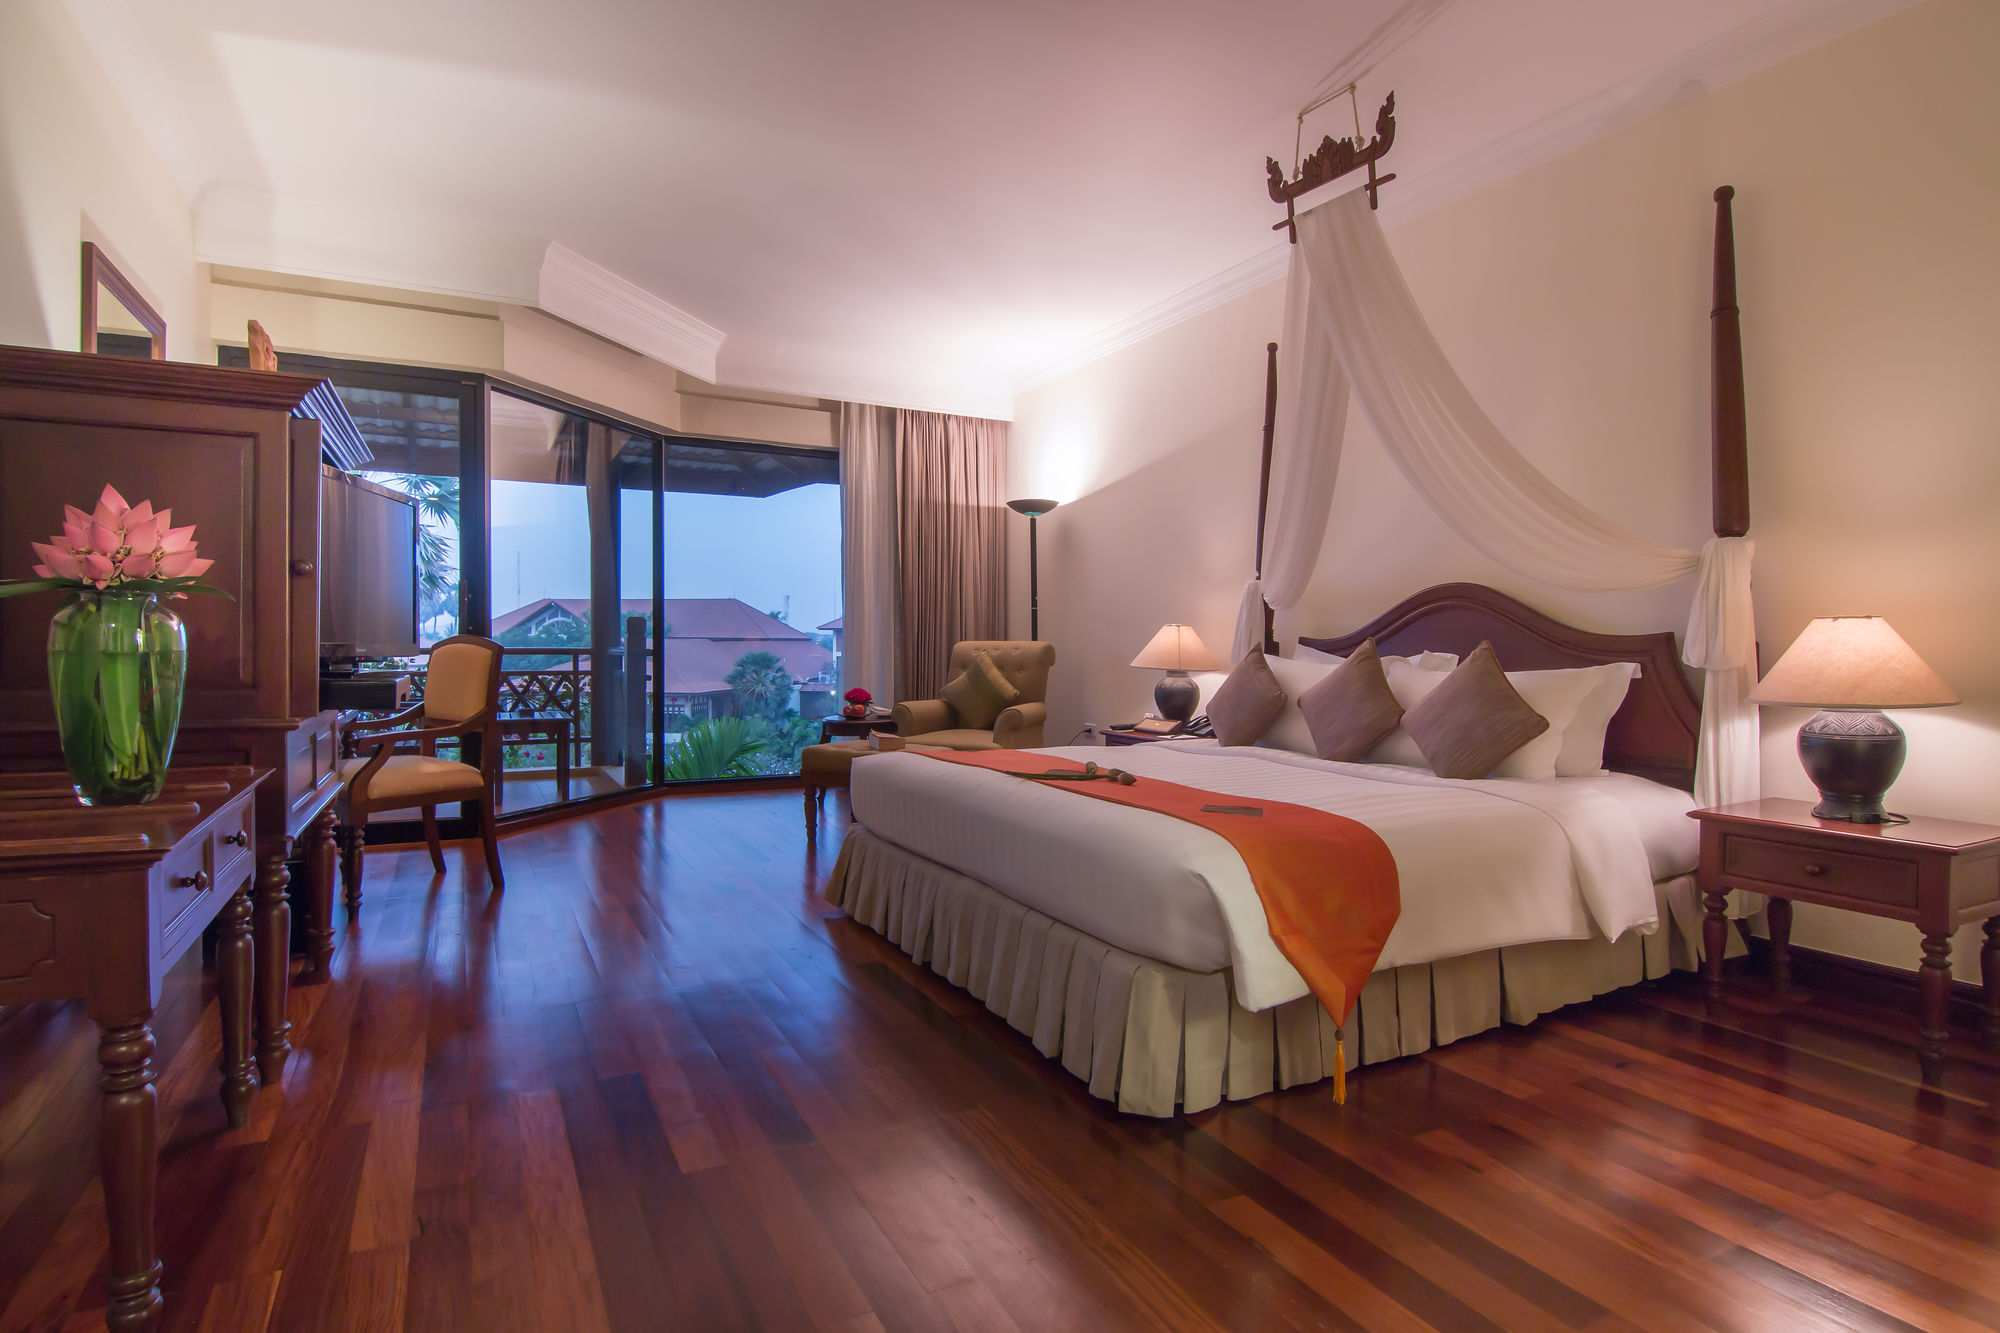 bedroom of Palace Residence and Villa Siem reap hotel